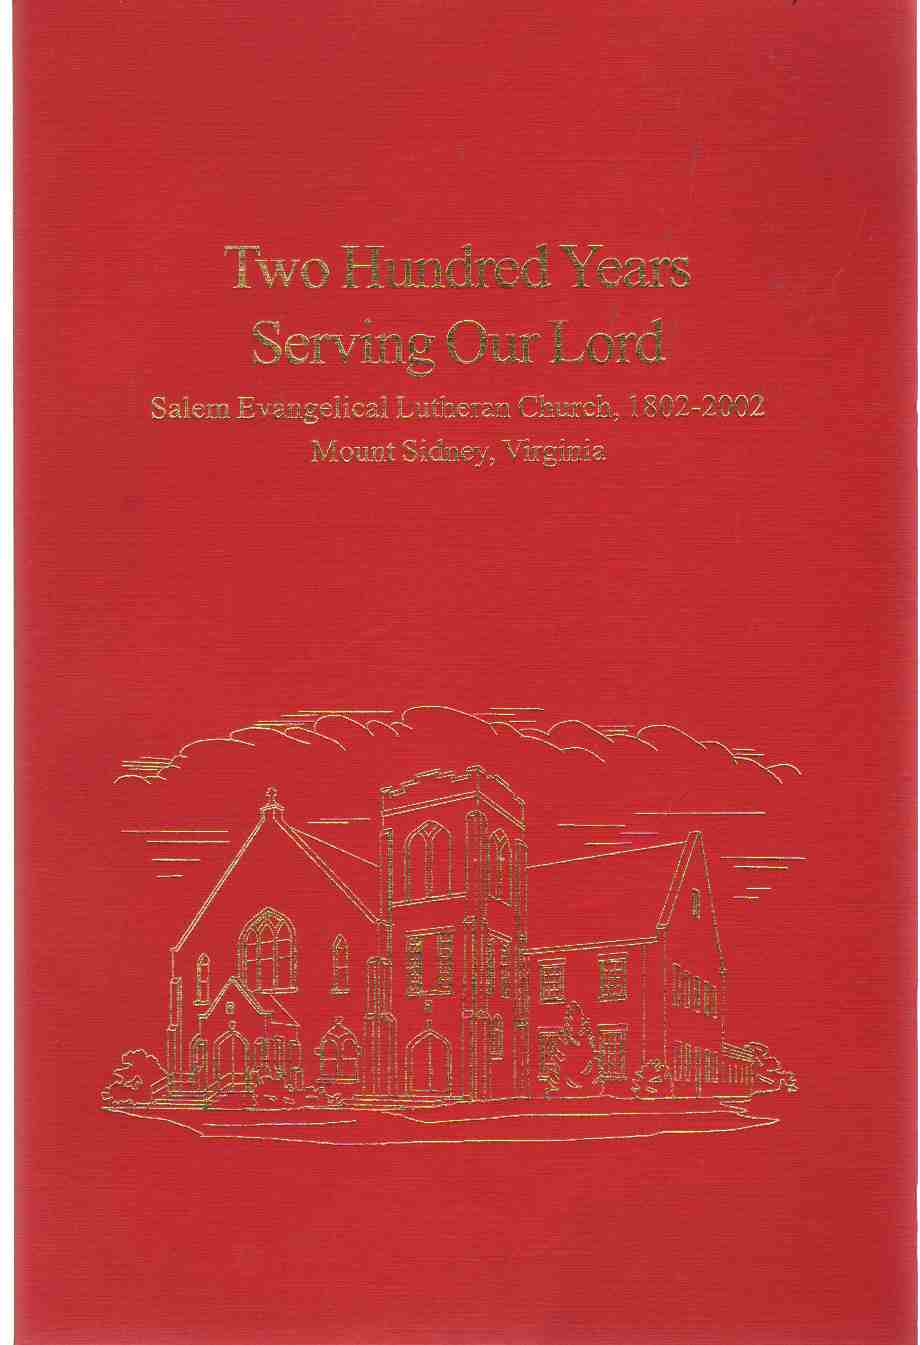 Image for TWO HUNDRED YEARS SERVING OUR LORD Salem Evangelical Lutheran Church, 1902-2002, Mount Sidney, Virginia